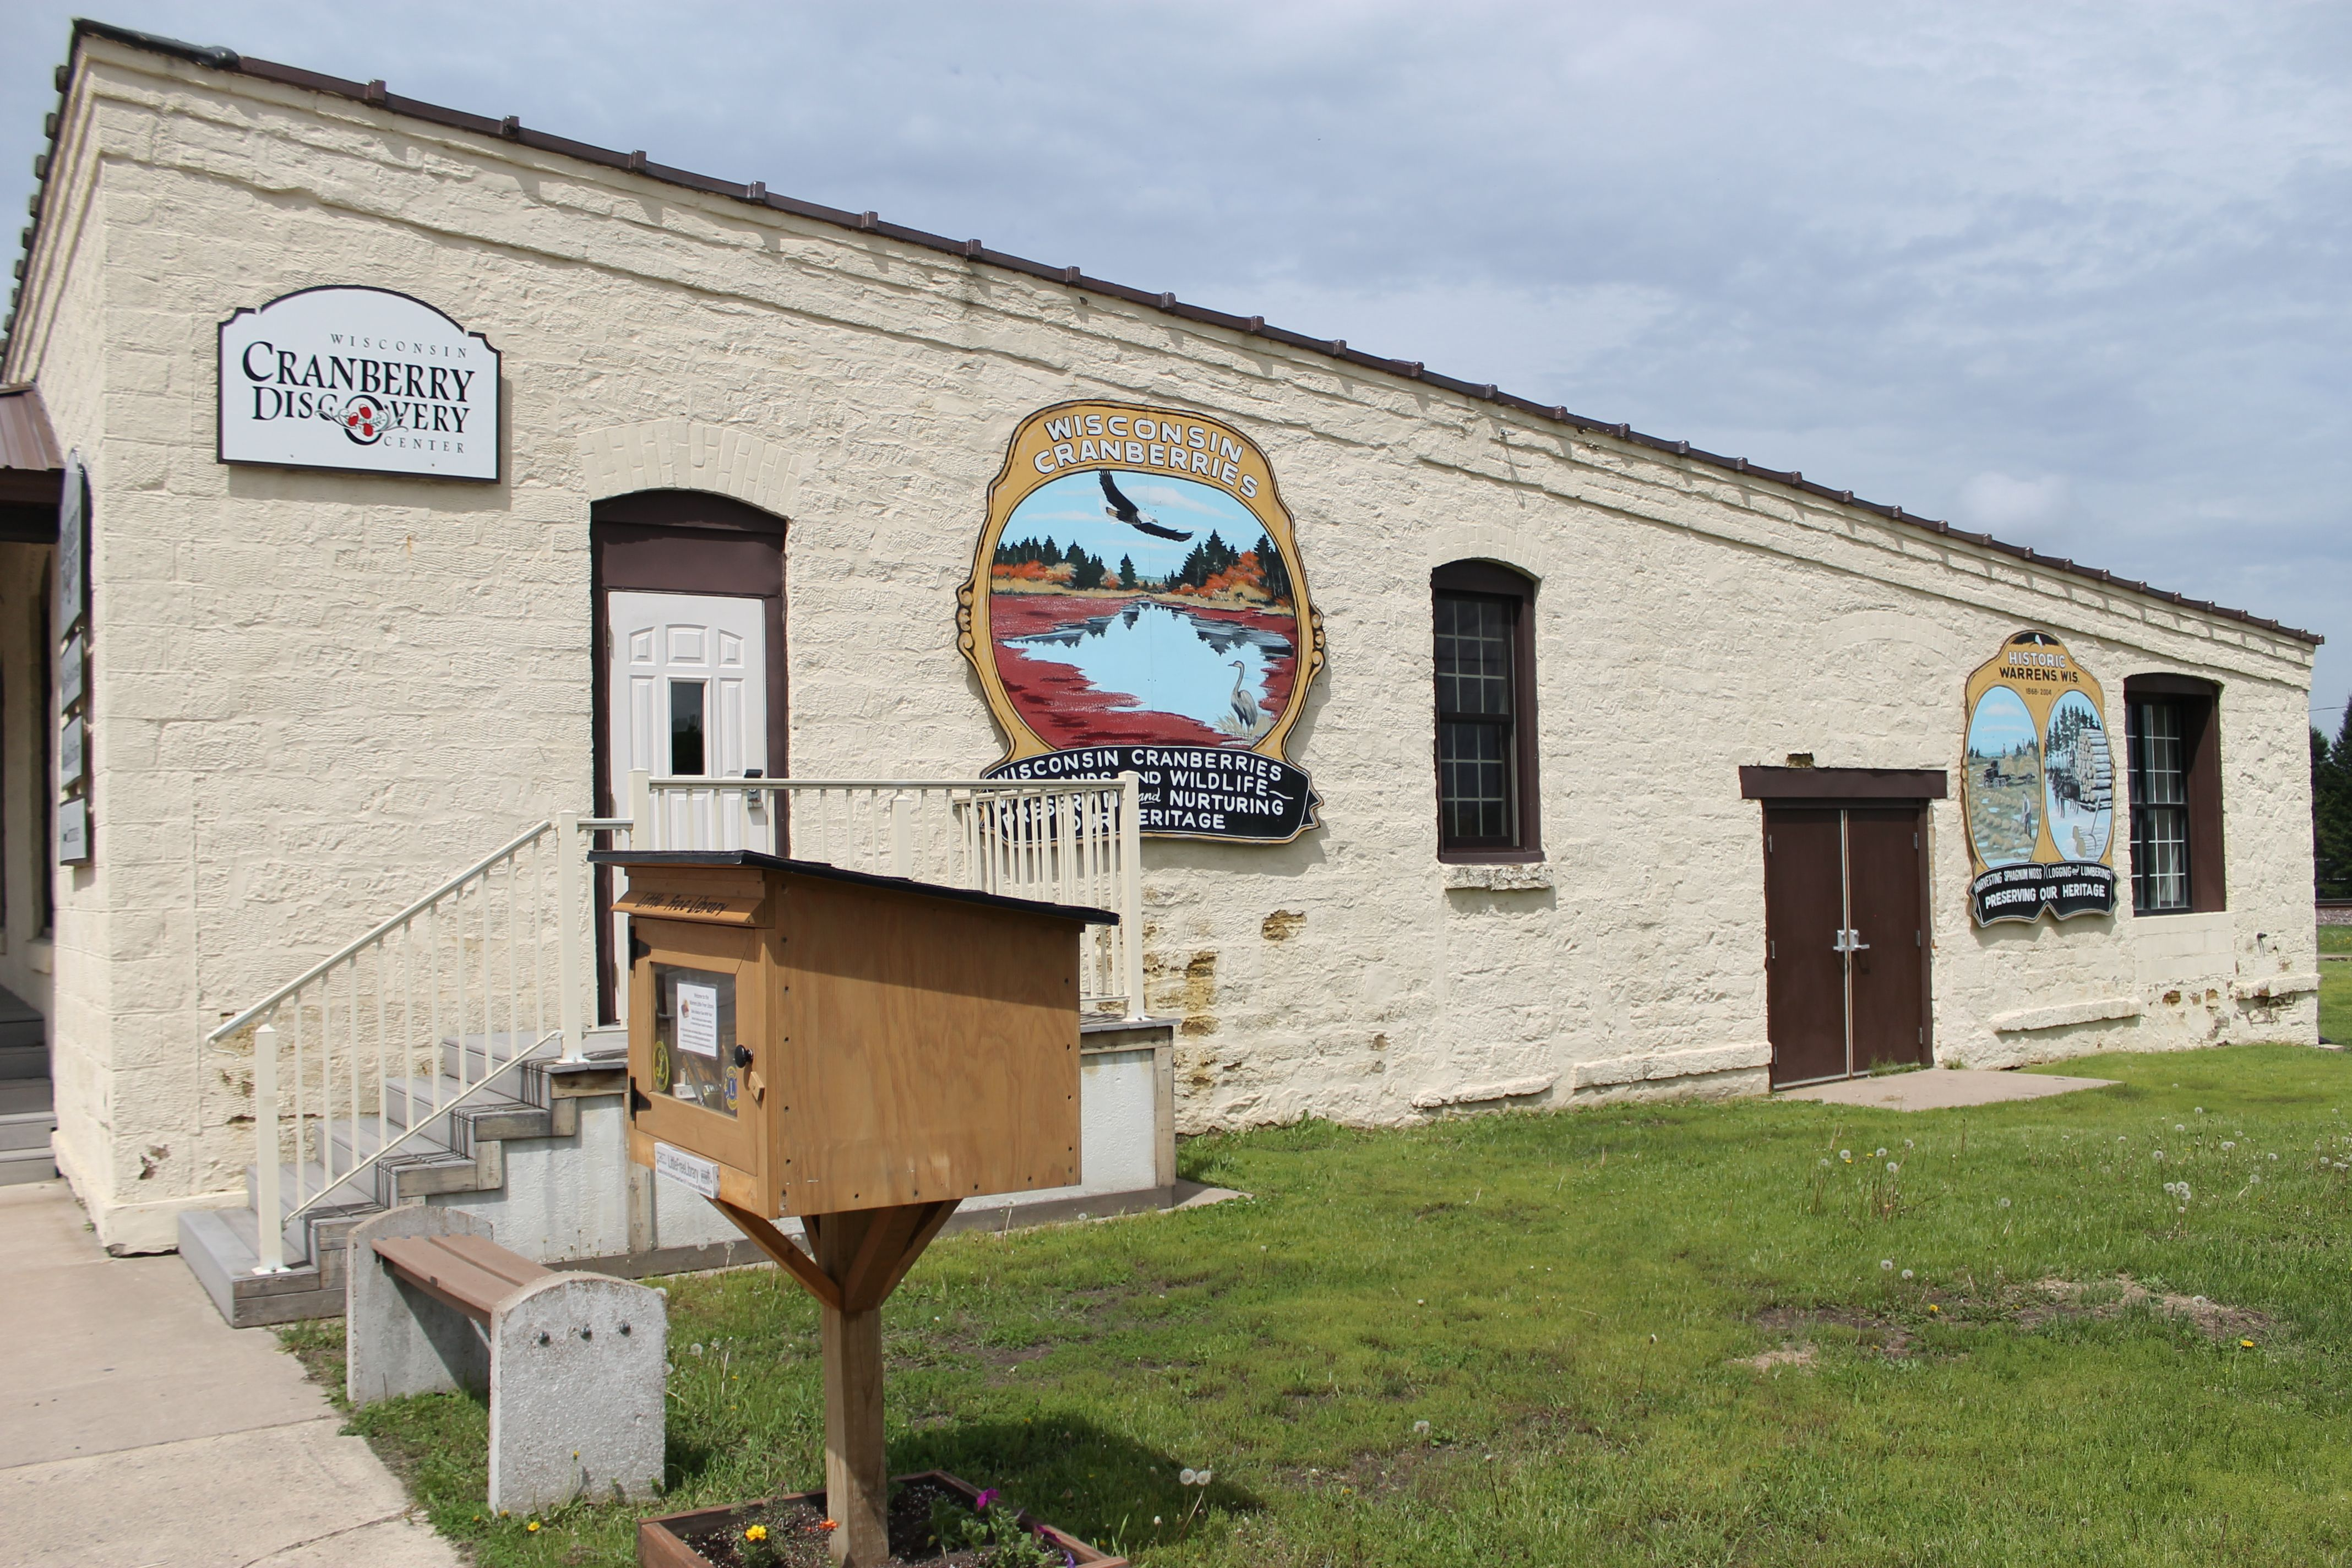 cranberry discovery center in warrens wisconsin travel wisconsin